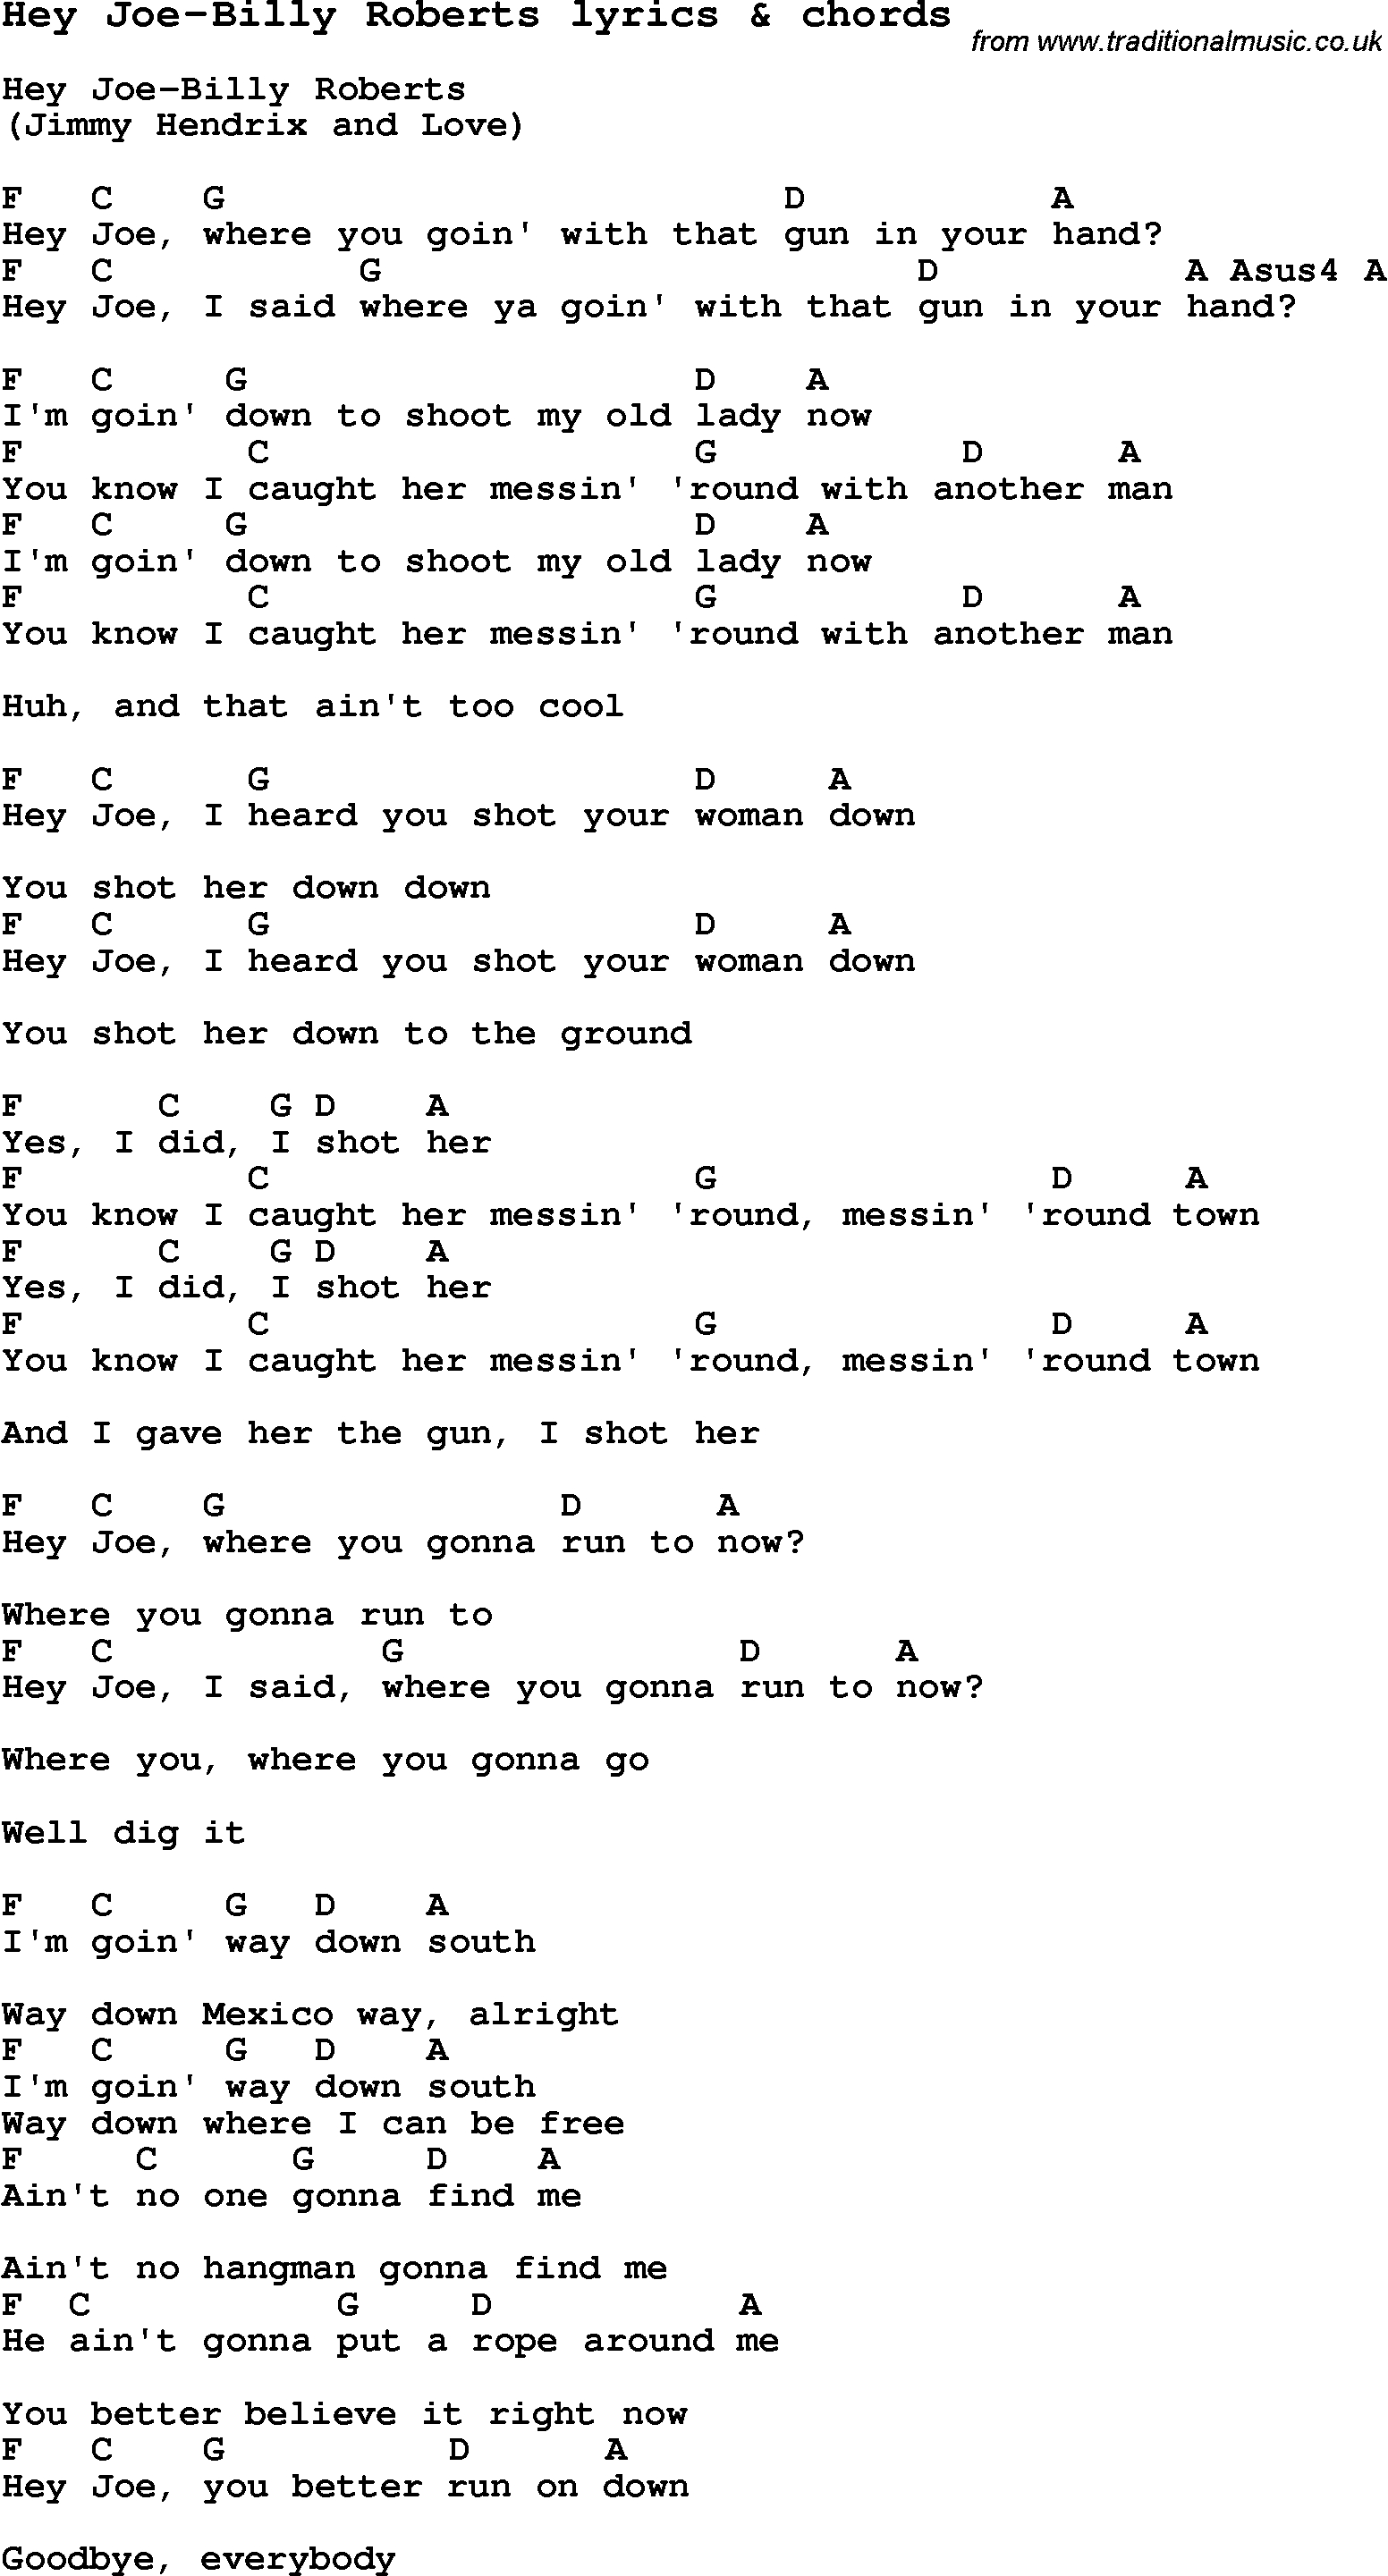 Hey Ya Chords Love Song Lyrics Forhey Joe Billy Roberts With Chords